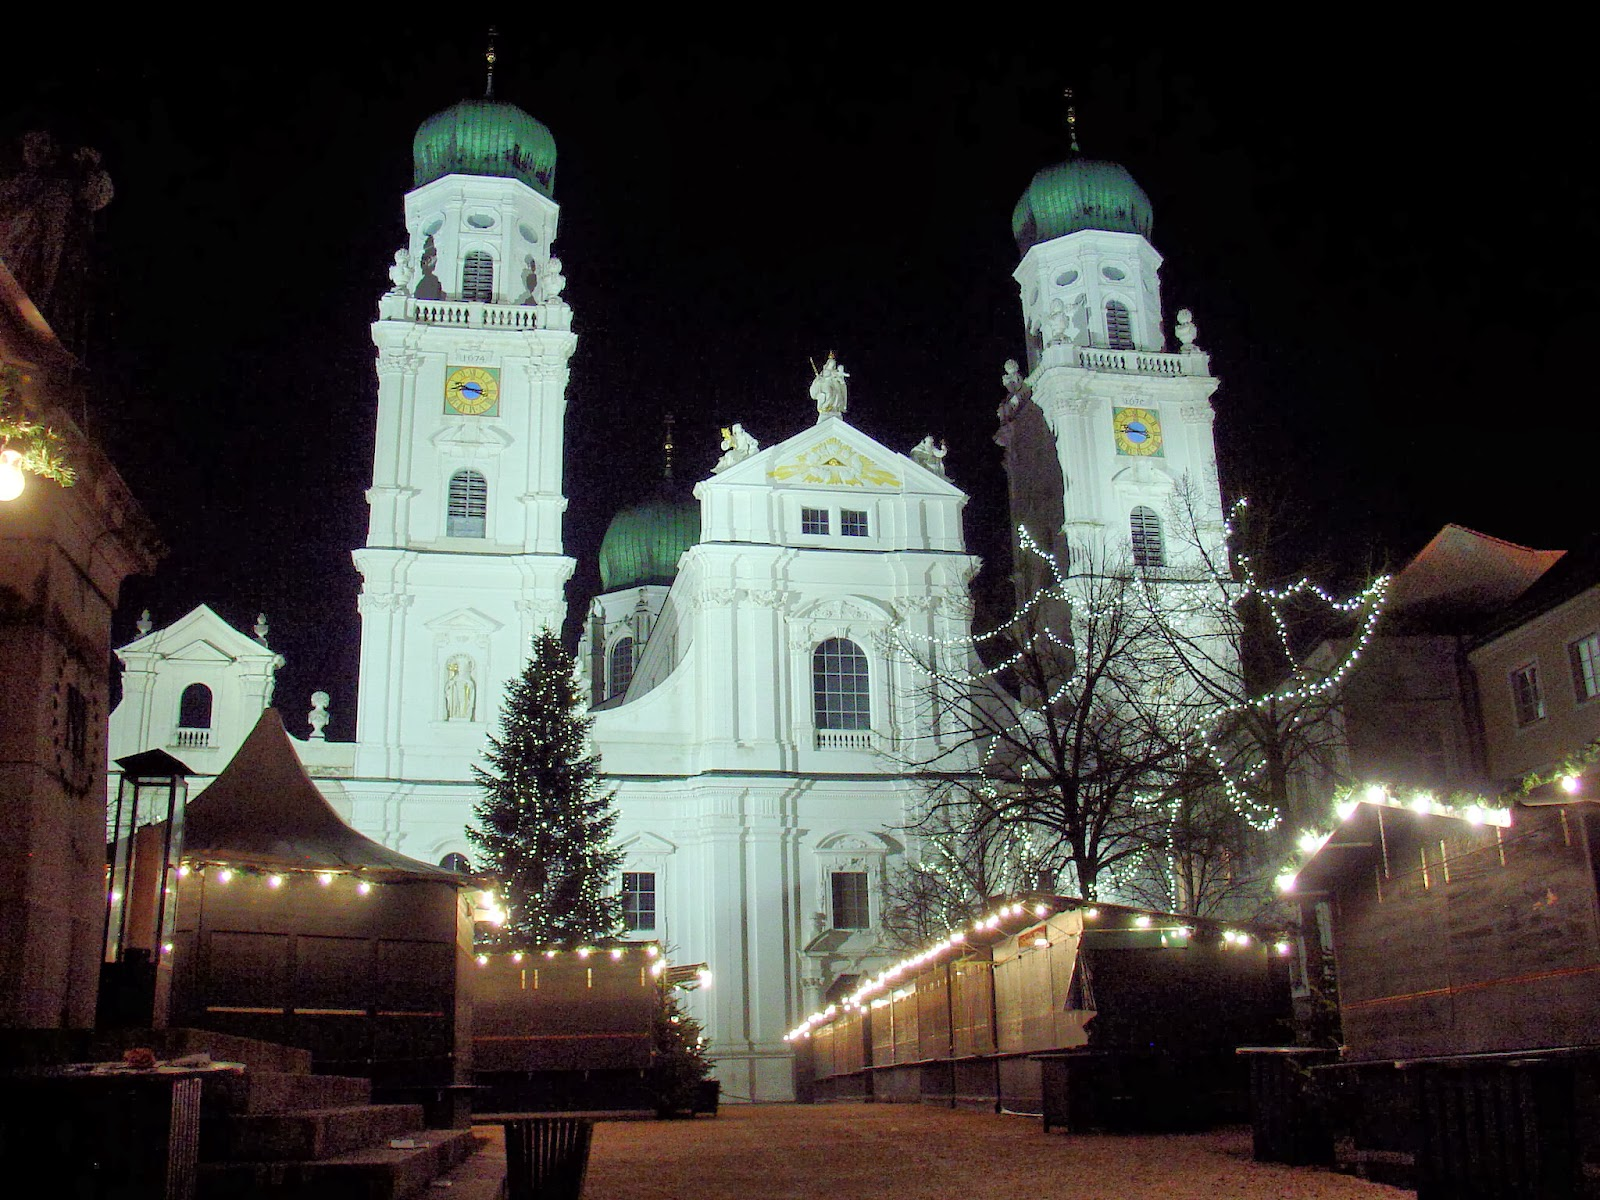 Late one night at Saint Stephan's in Passau, Germany. All photography is the property of EuroTravelogue™ unless noted. Unauthorized use is prohibited.